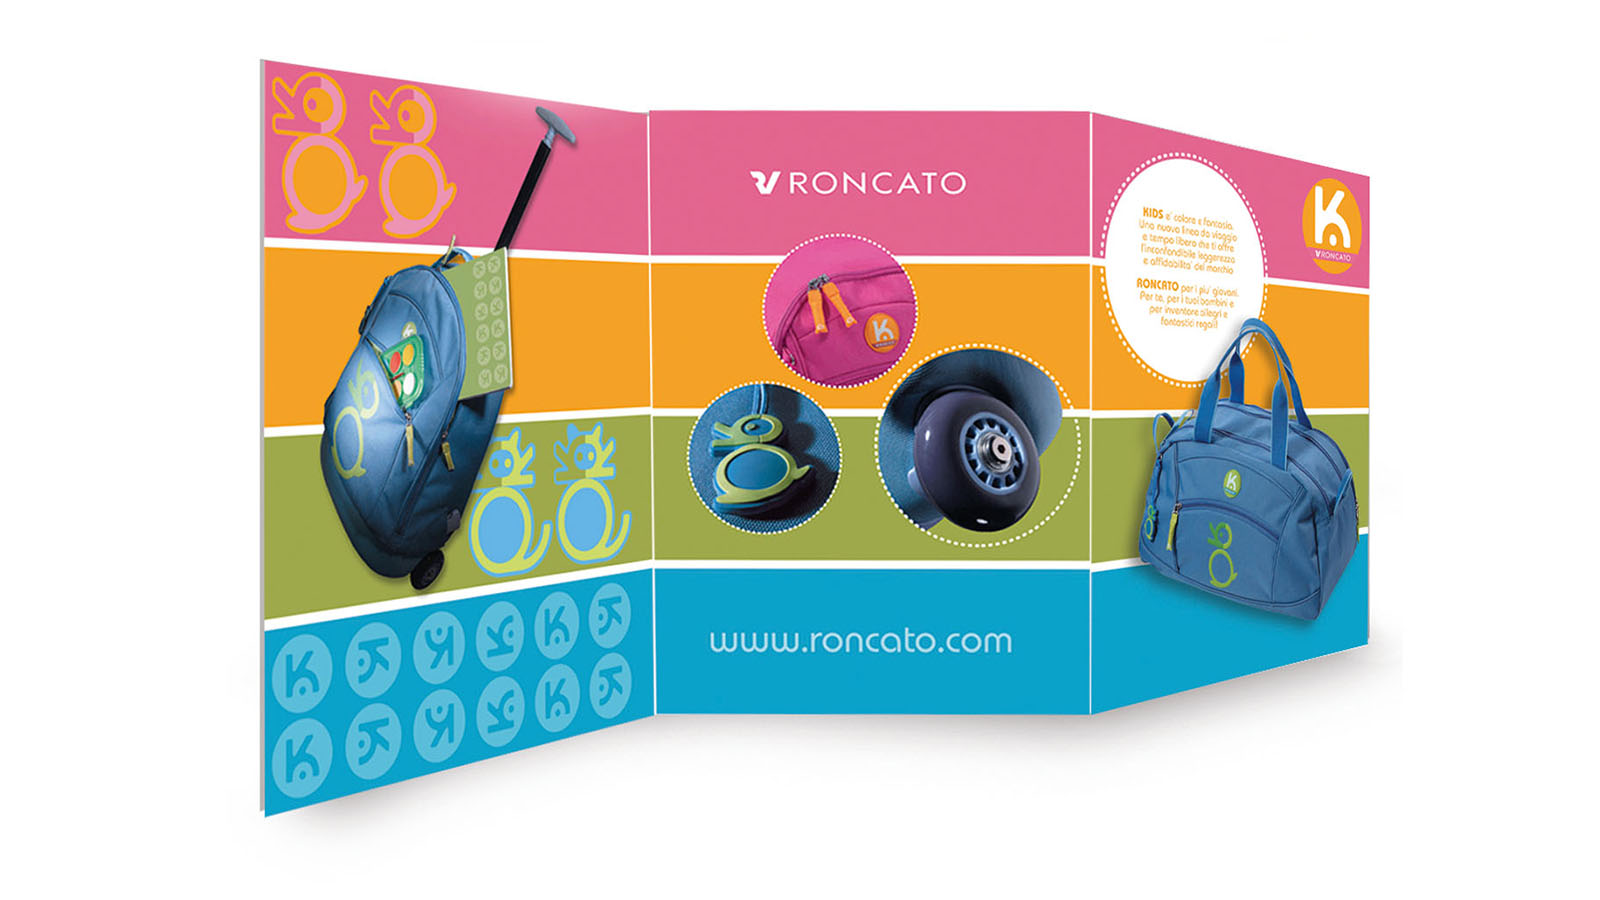 roncato-graphic-collections-for-travel-goods-banner